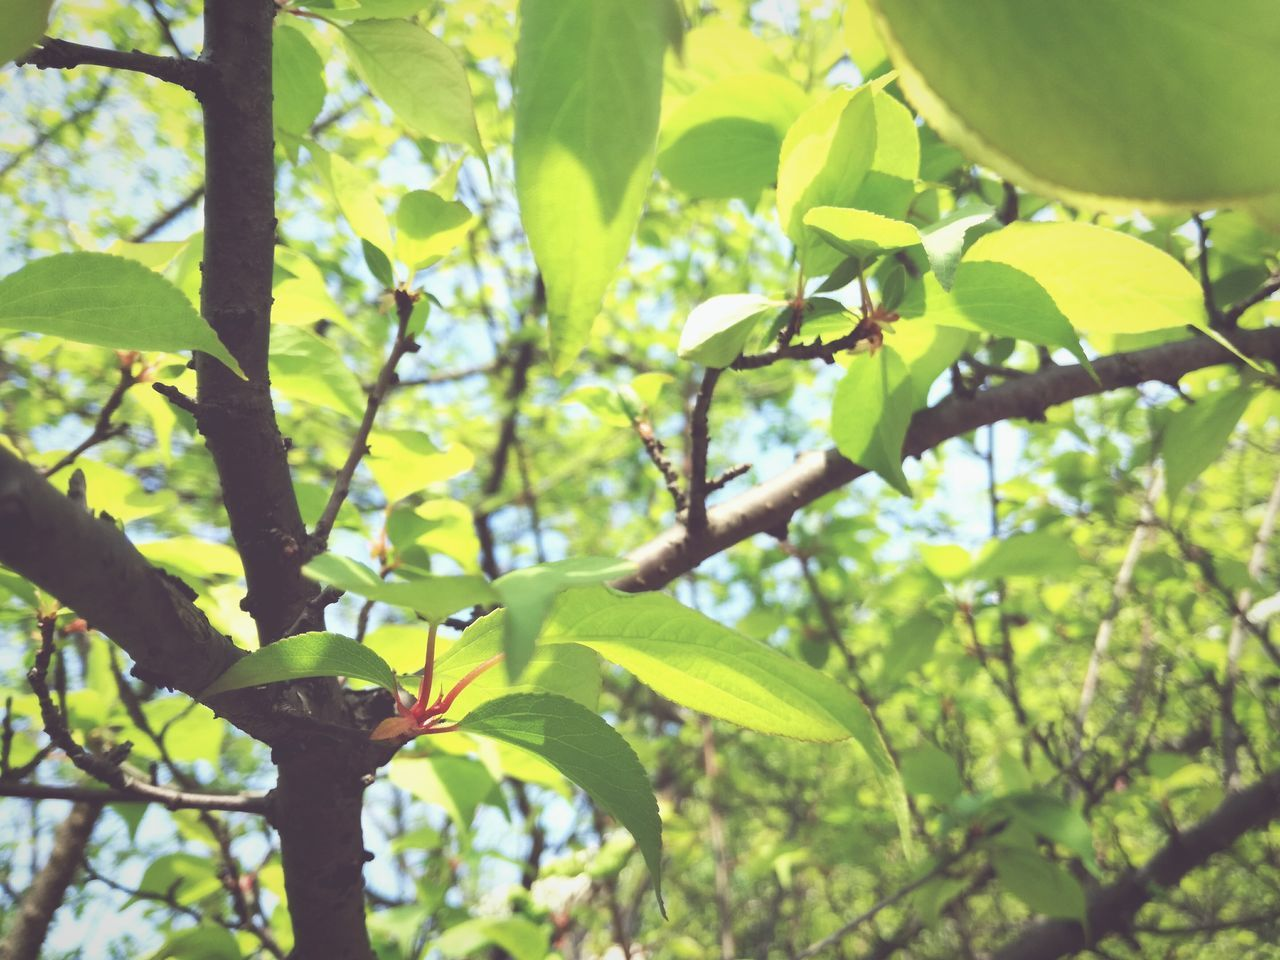 leaf, growth, tree, nature, green color, day, branch, low angle view, no people, outdoors, beauty in nature, plant, close-up, freshness